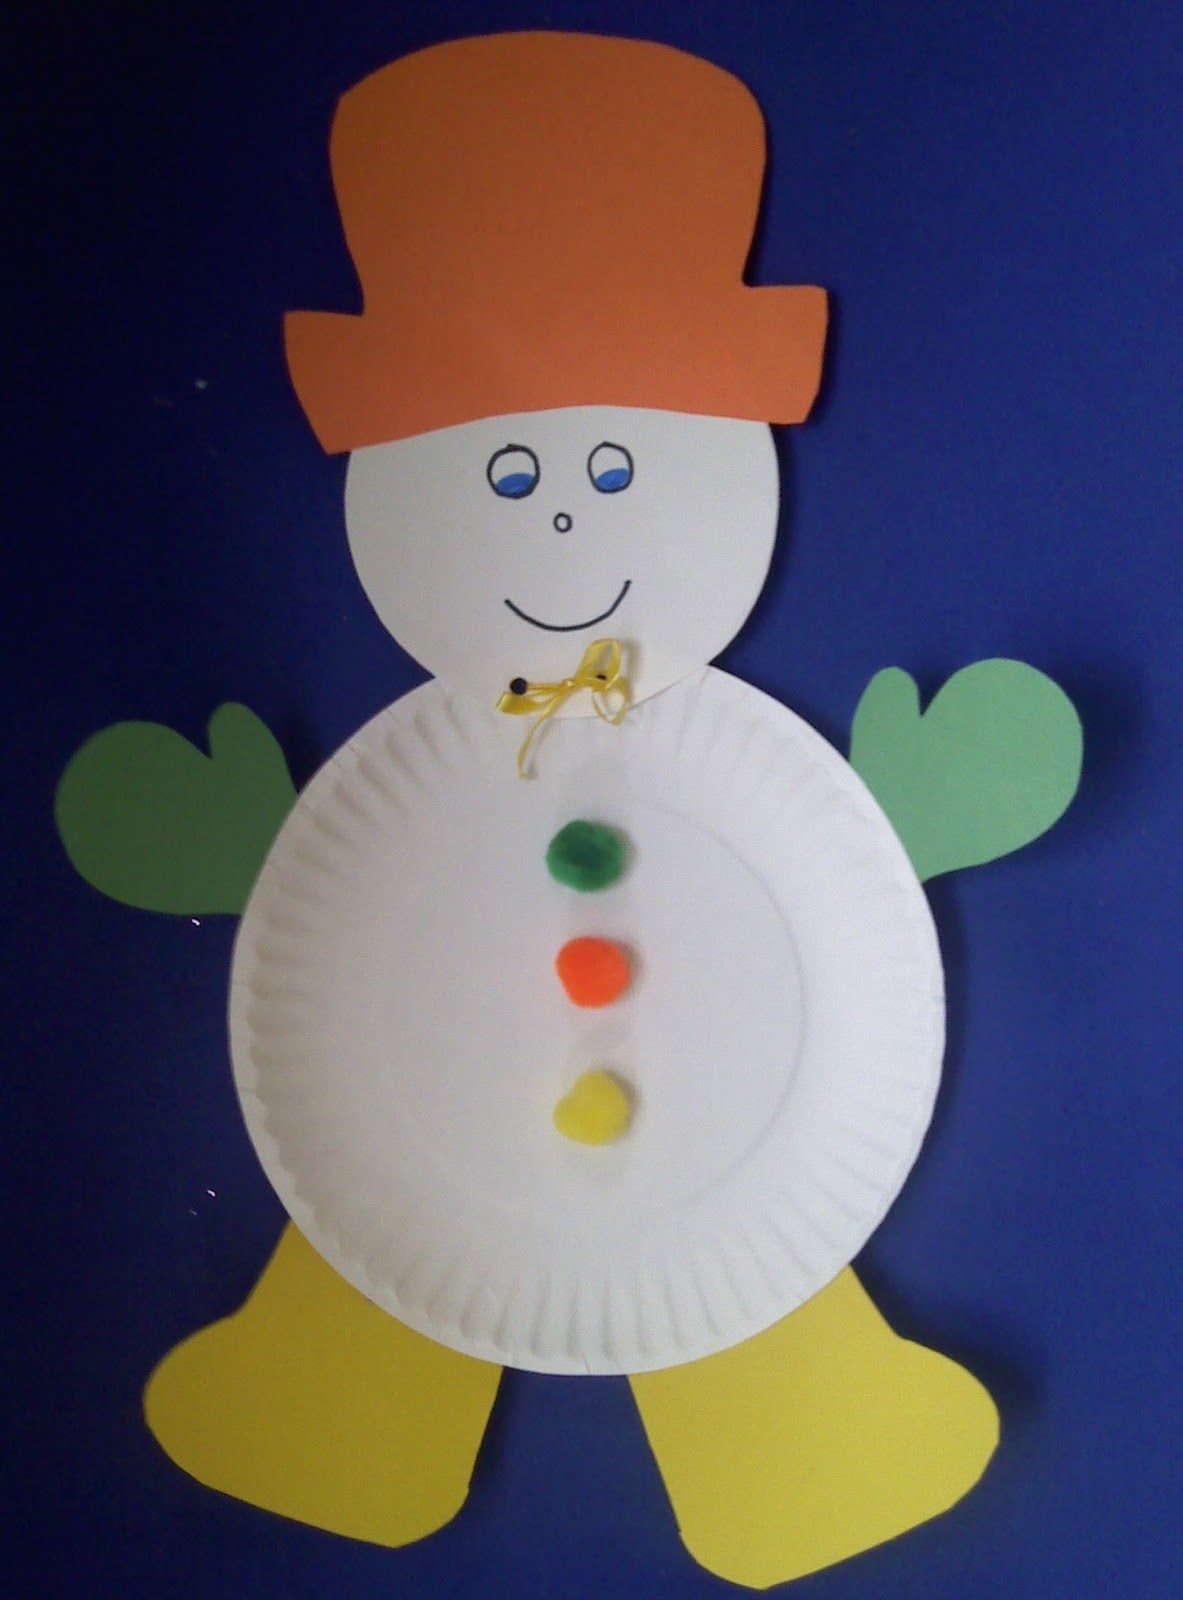 Crafts for preschoolers january 2012 paper plate snowman jeuxipadfo Gallery